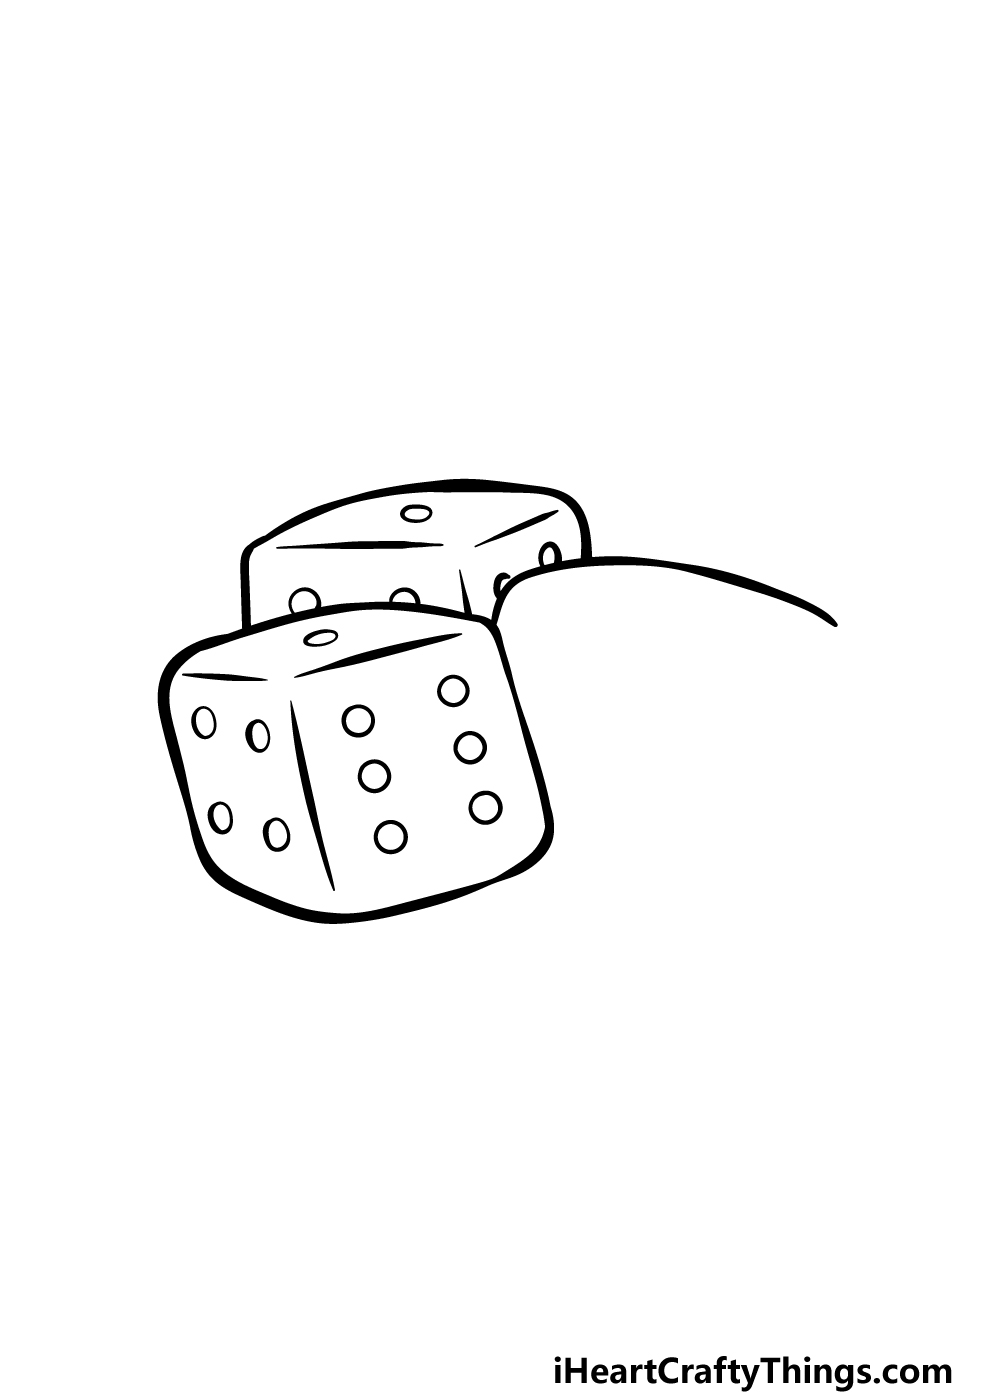 drawing the dice step 3